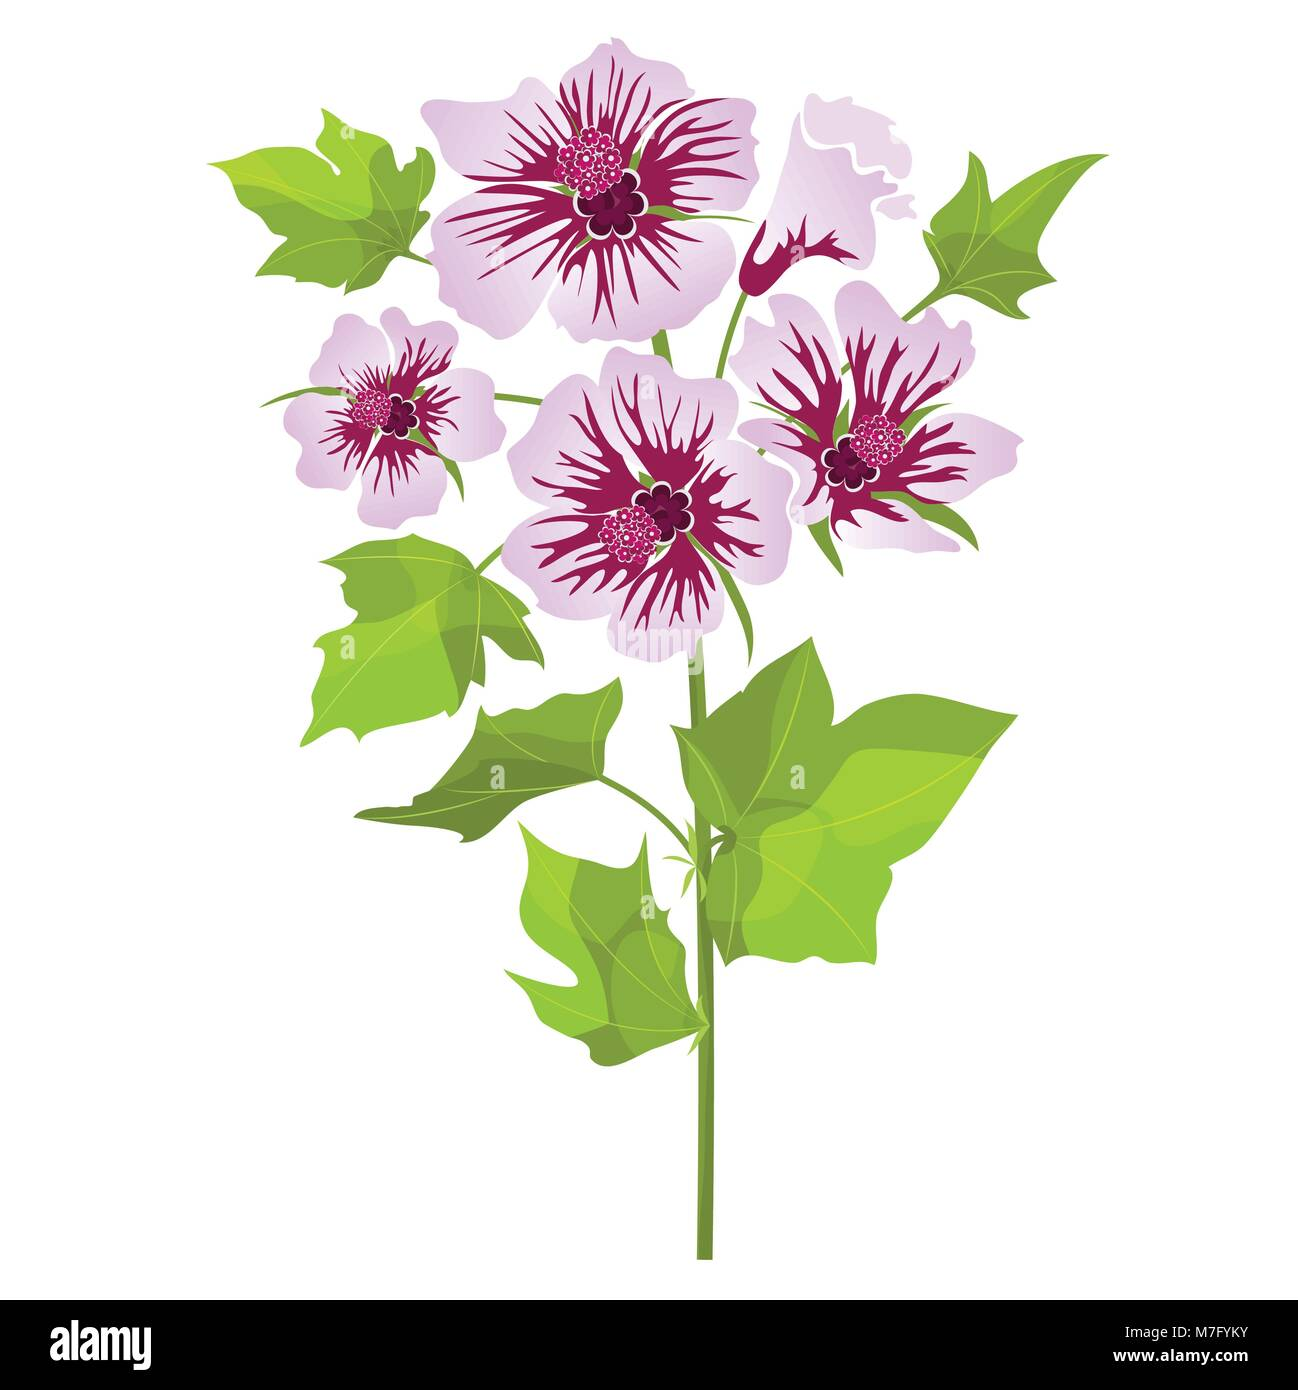 Pink flowers mallow with green leaves, isolated on white background. Vector illustration - Stock Vector